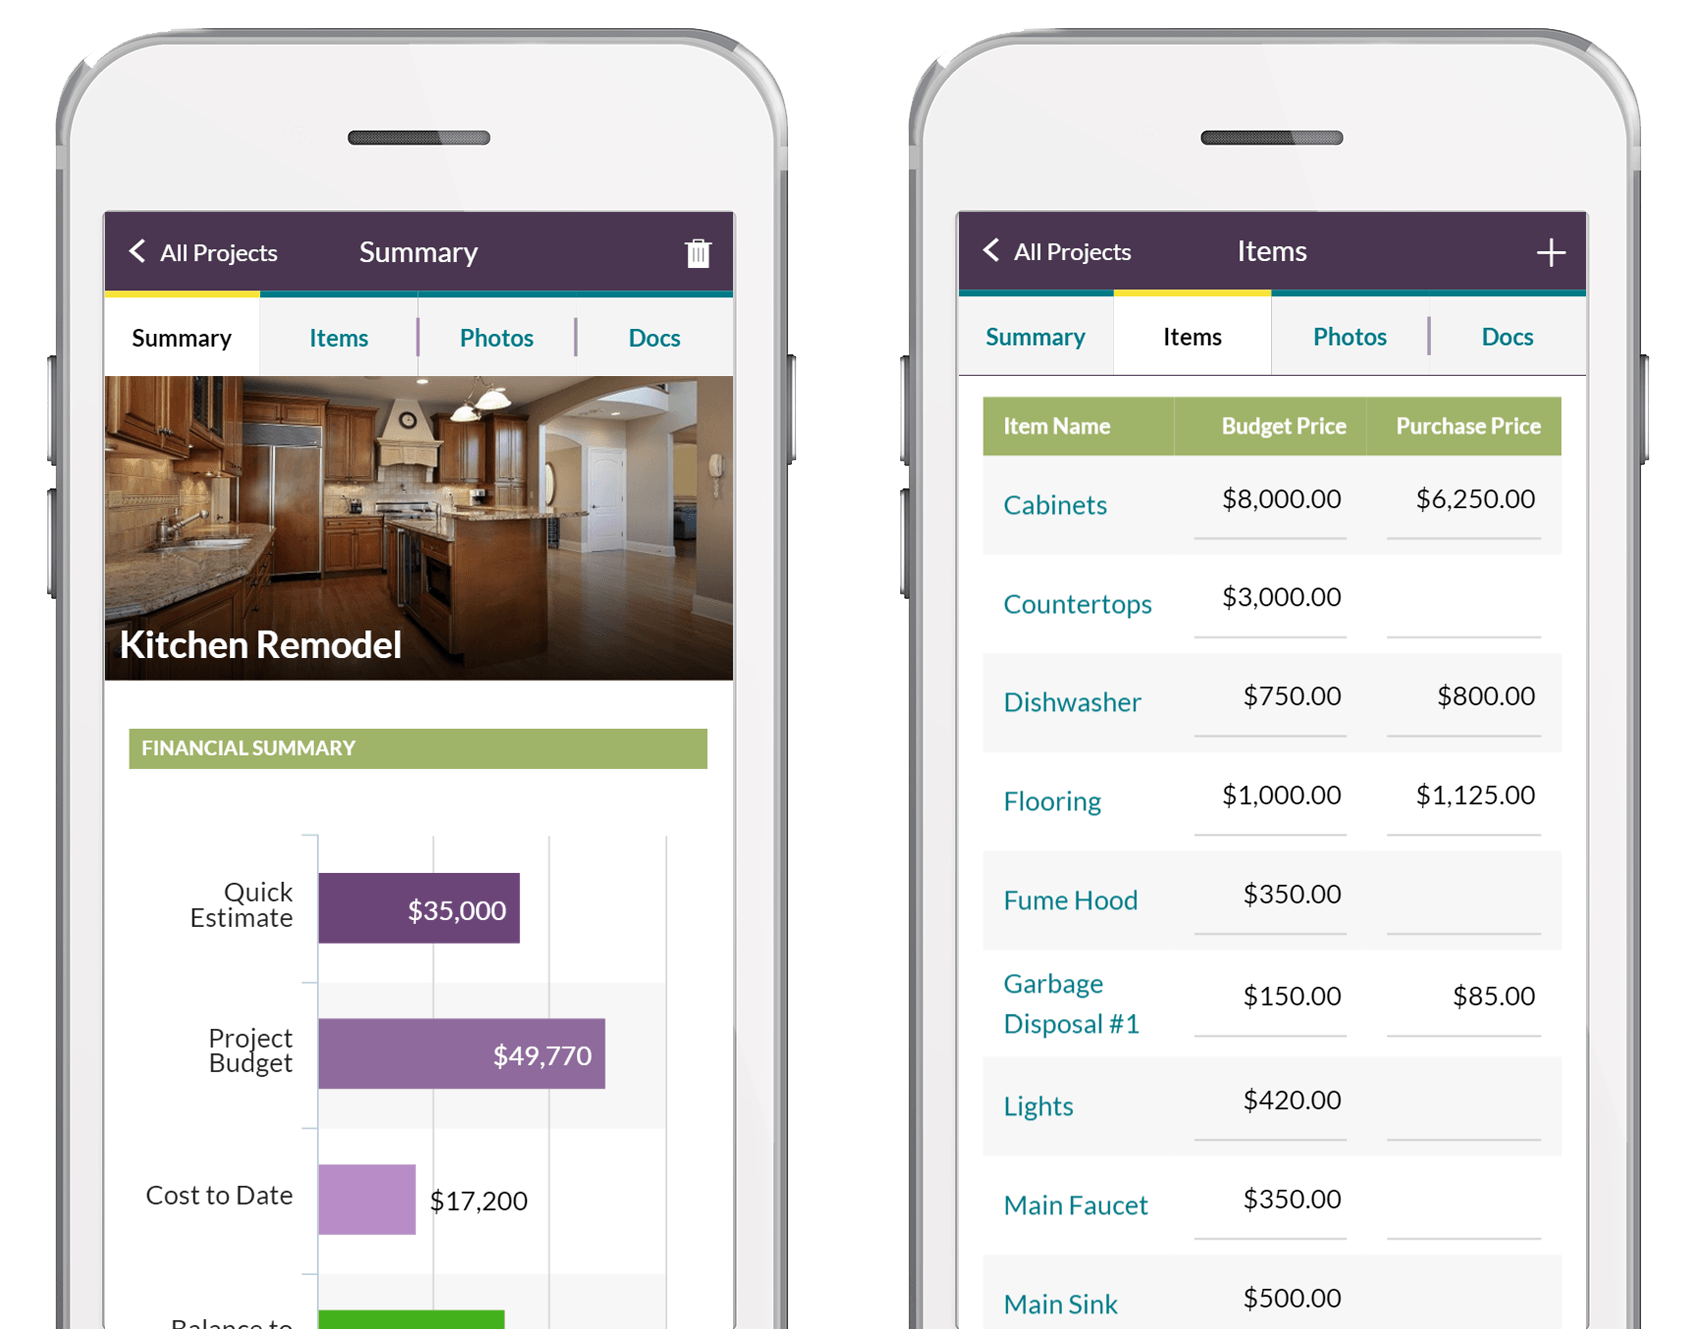 Home Improvement Budgeting & Remodeling App | HomeZada on lowes home improvement, exterior home remodeling, do it yourself remodeling, home improvement projects, home improvement grants, lowes home improvement store, home improvement store, diy home improvement, loews home improvement, inside out remodeling, home improvement catalog, home improvement loan, home improvement tips, bathroom remodeling, sears home improvement, mobile home remodeling, home improvement financing, landscaping remodeling, home improvement contractor,